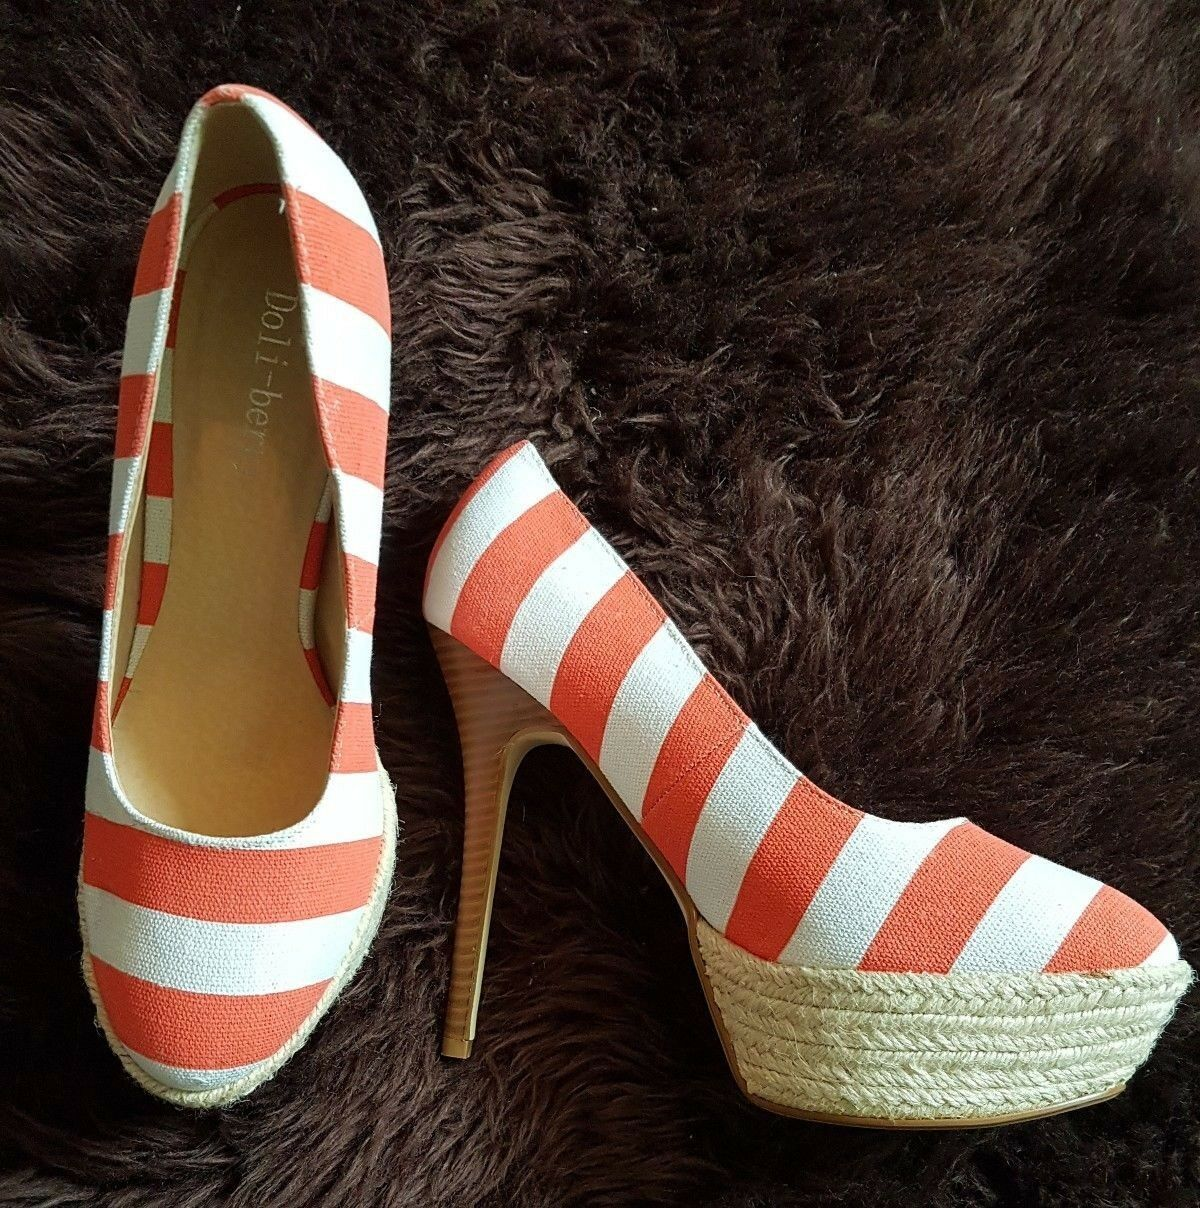 orange and white stripped high heels platform size 38 UK 5